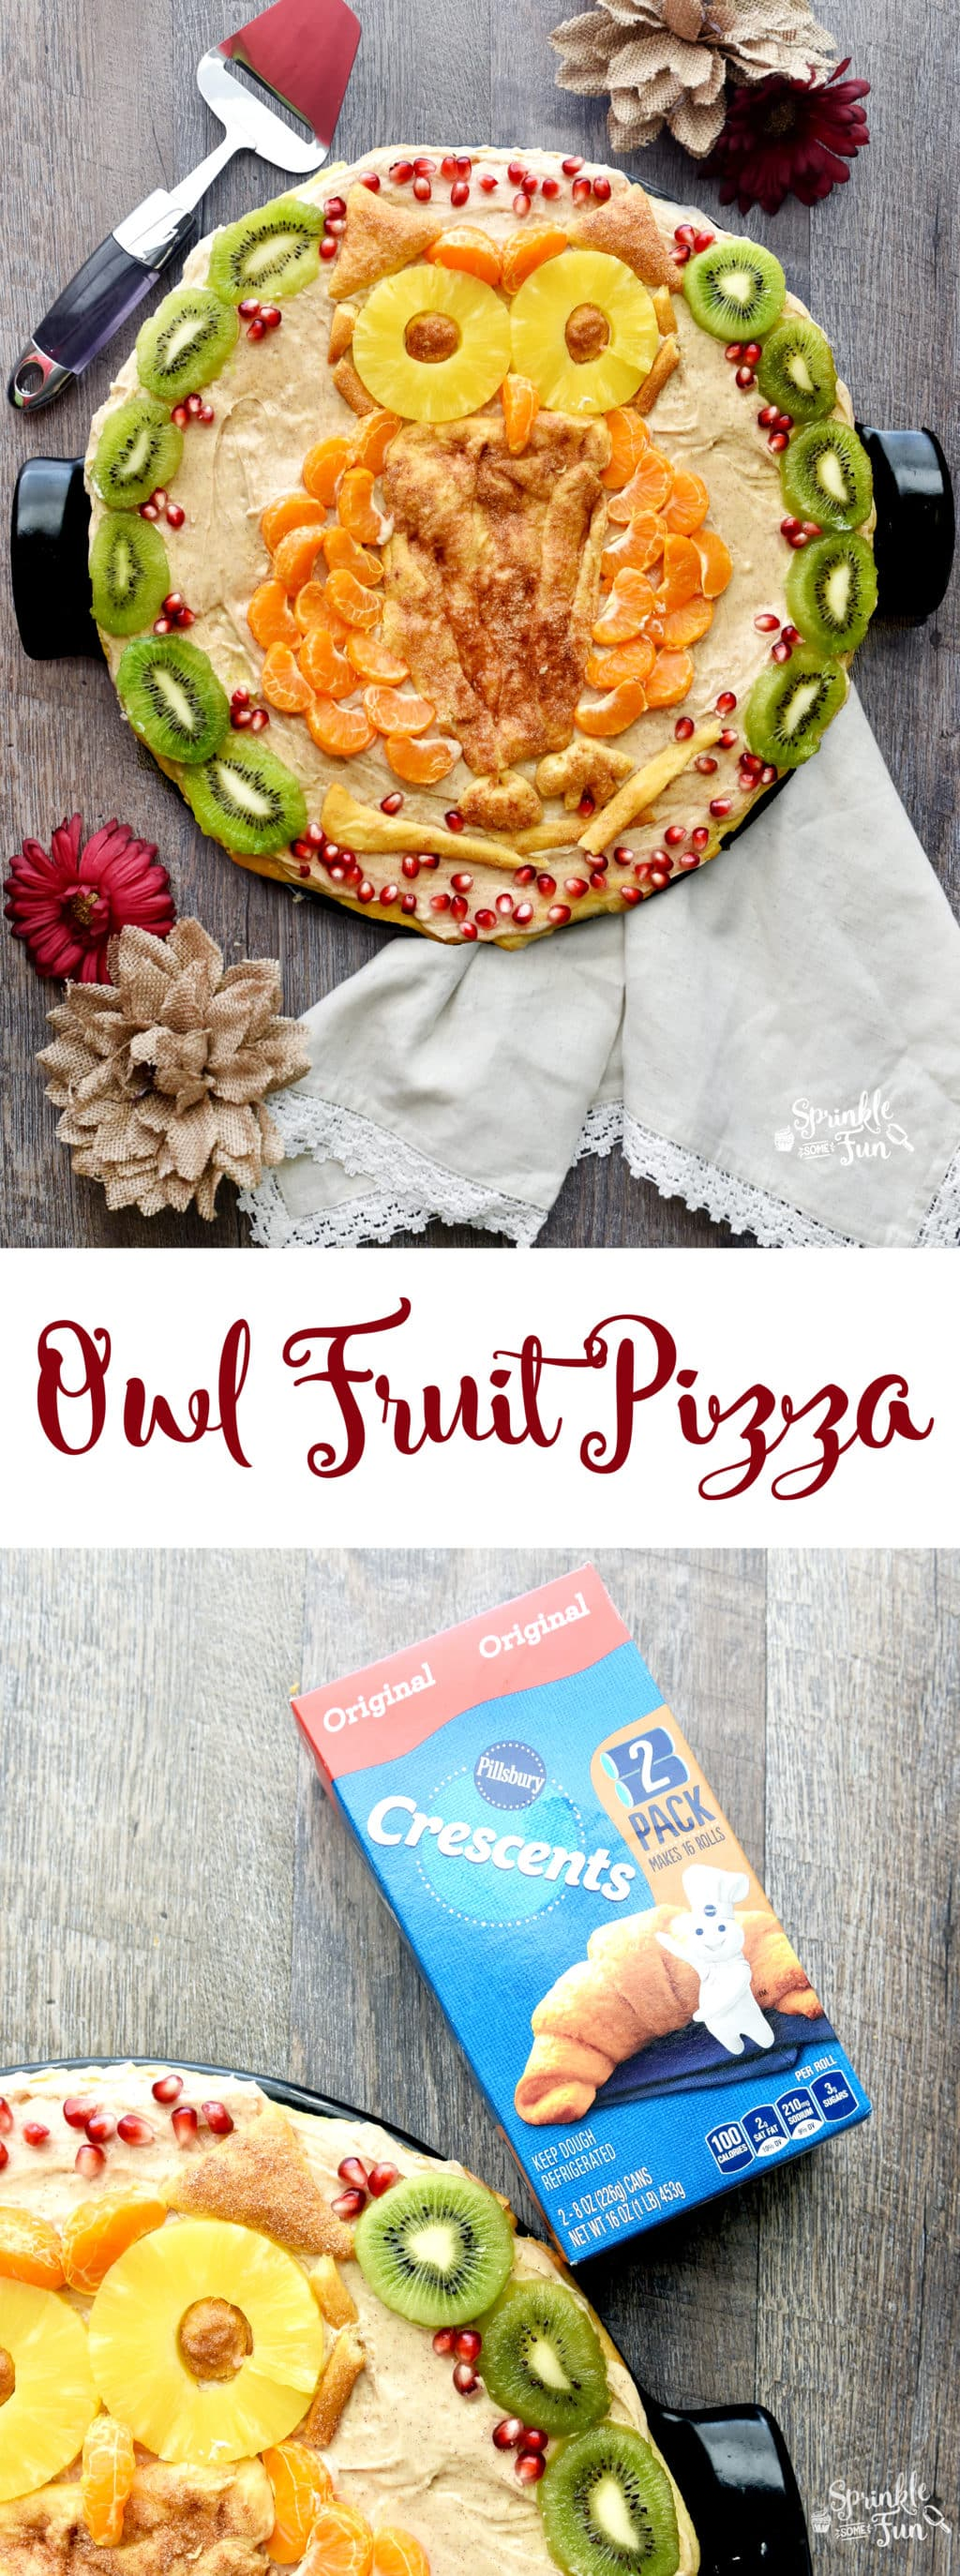 This Owl Fruit Pizza is a fun twist on the classic!  I also added some cinnamon to the mix which will be perfect for fall and winter holidays.  Isn't the owl so cute?